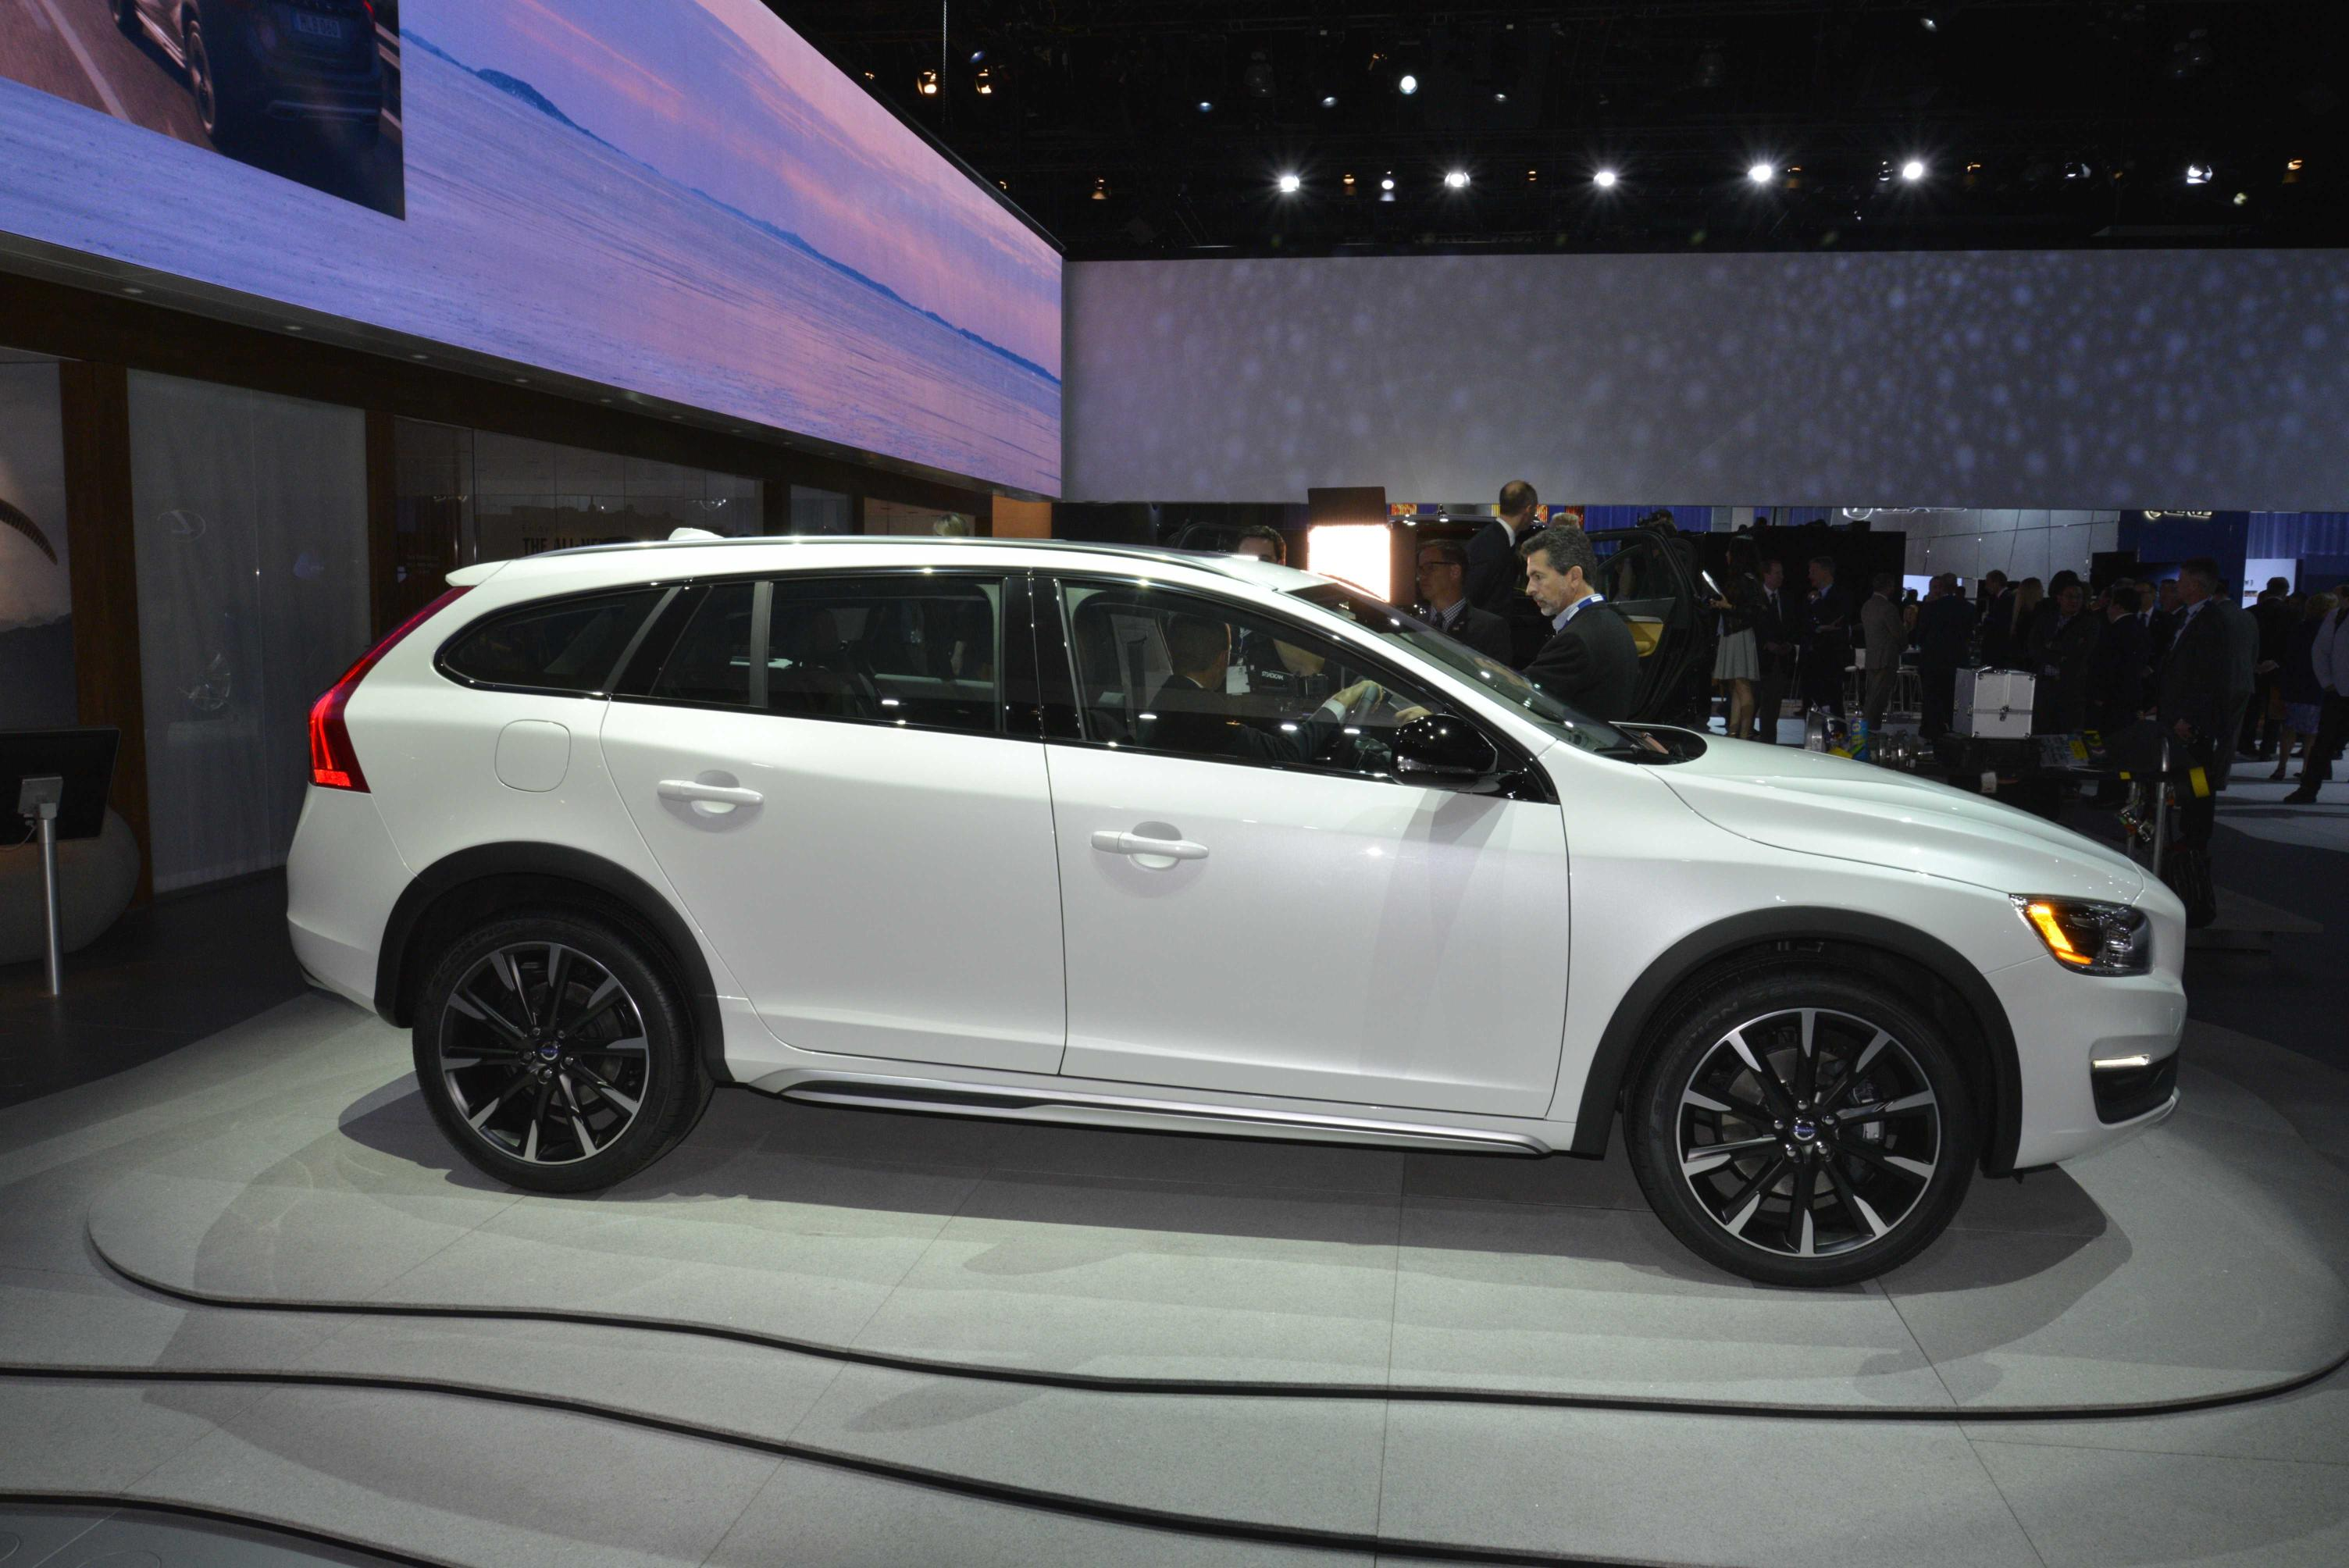 Volvo V60 Cross Country Makes World Debut at 2014 LA Show [Live Photos] - autoevolution